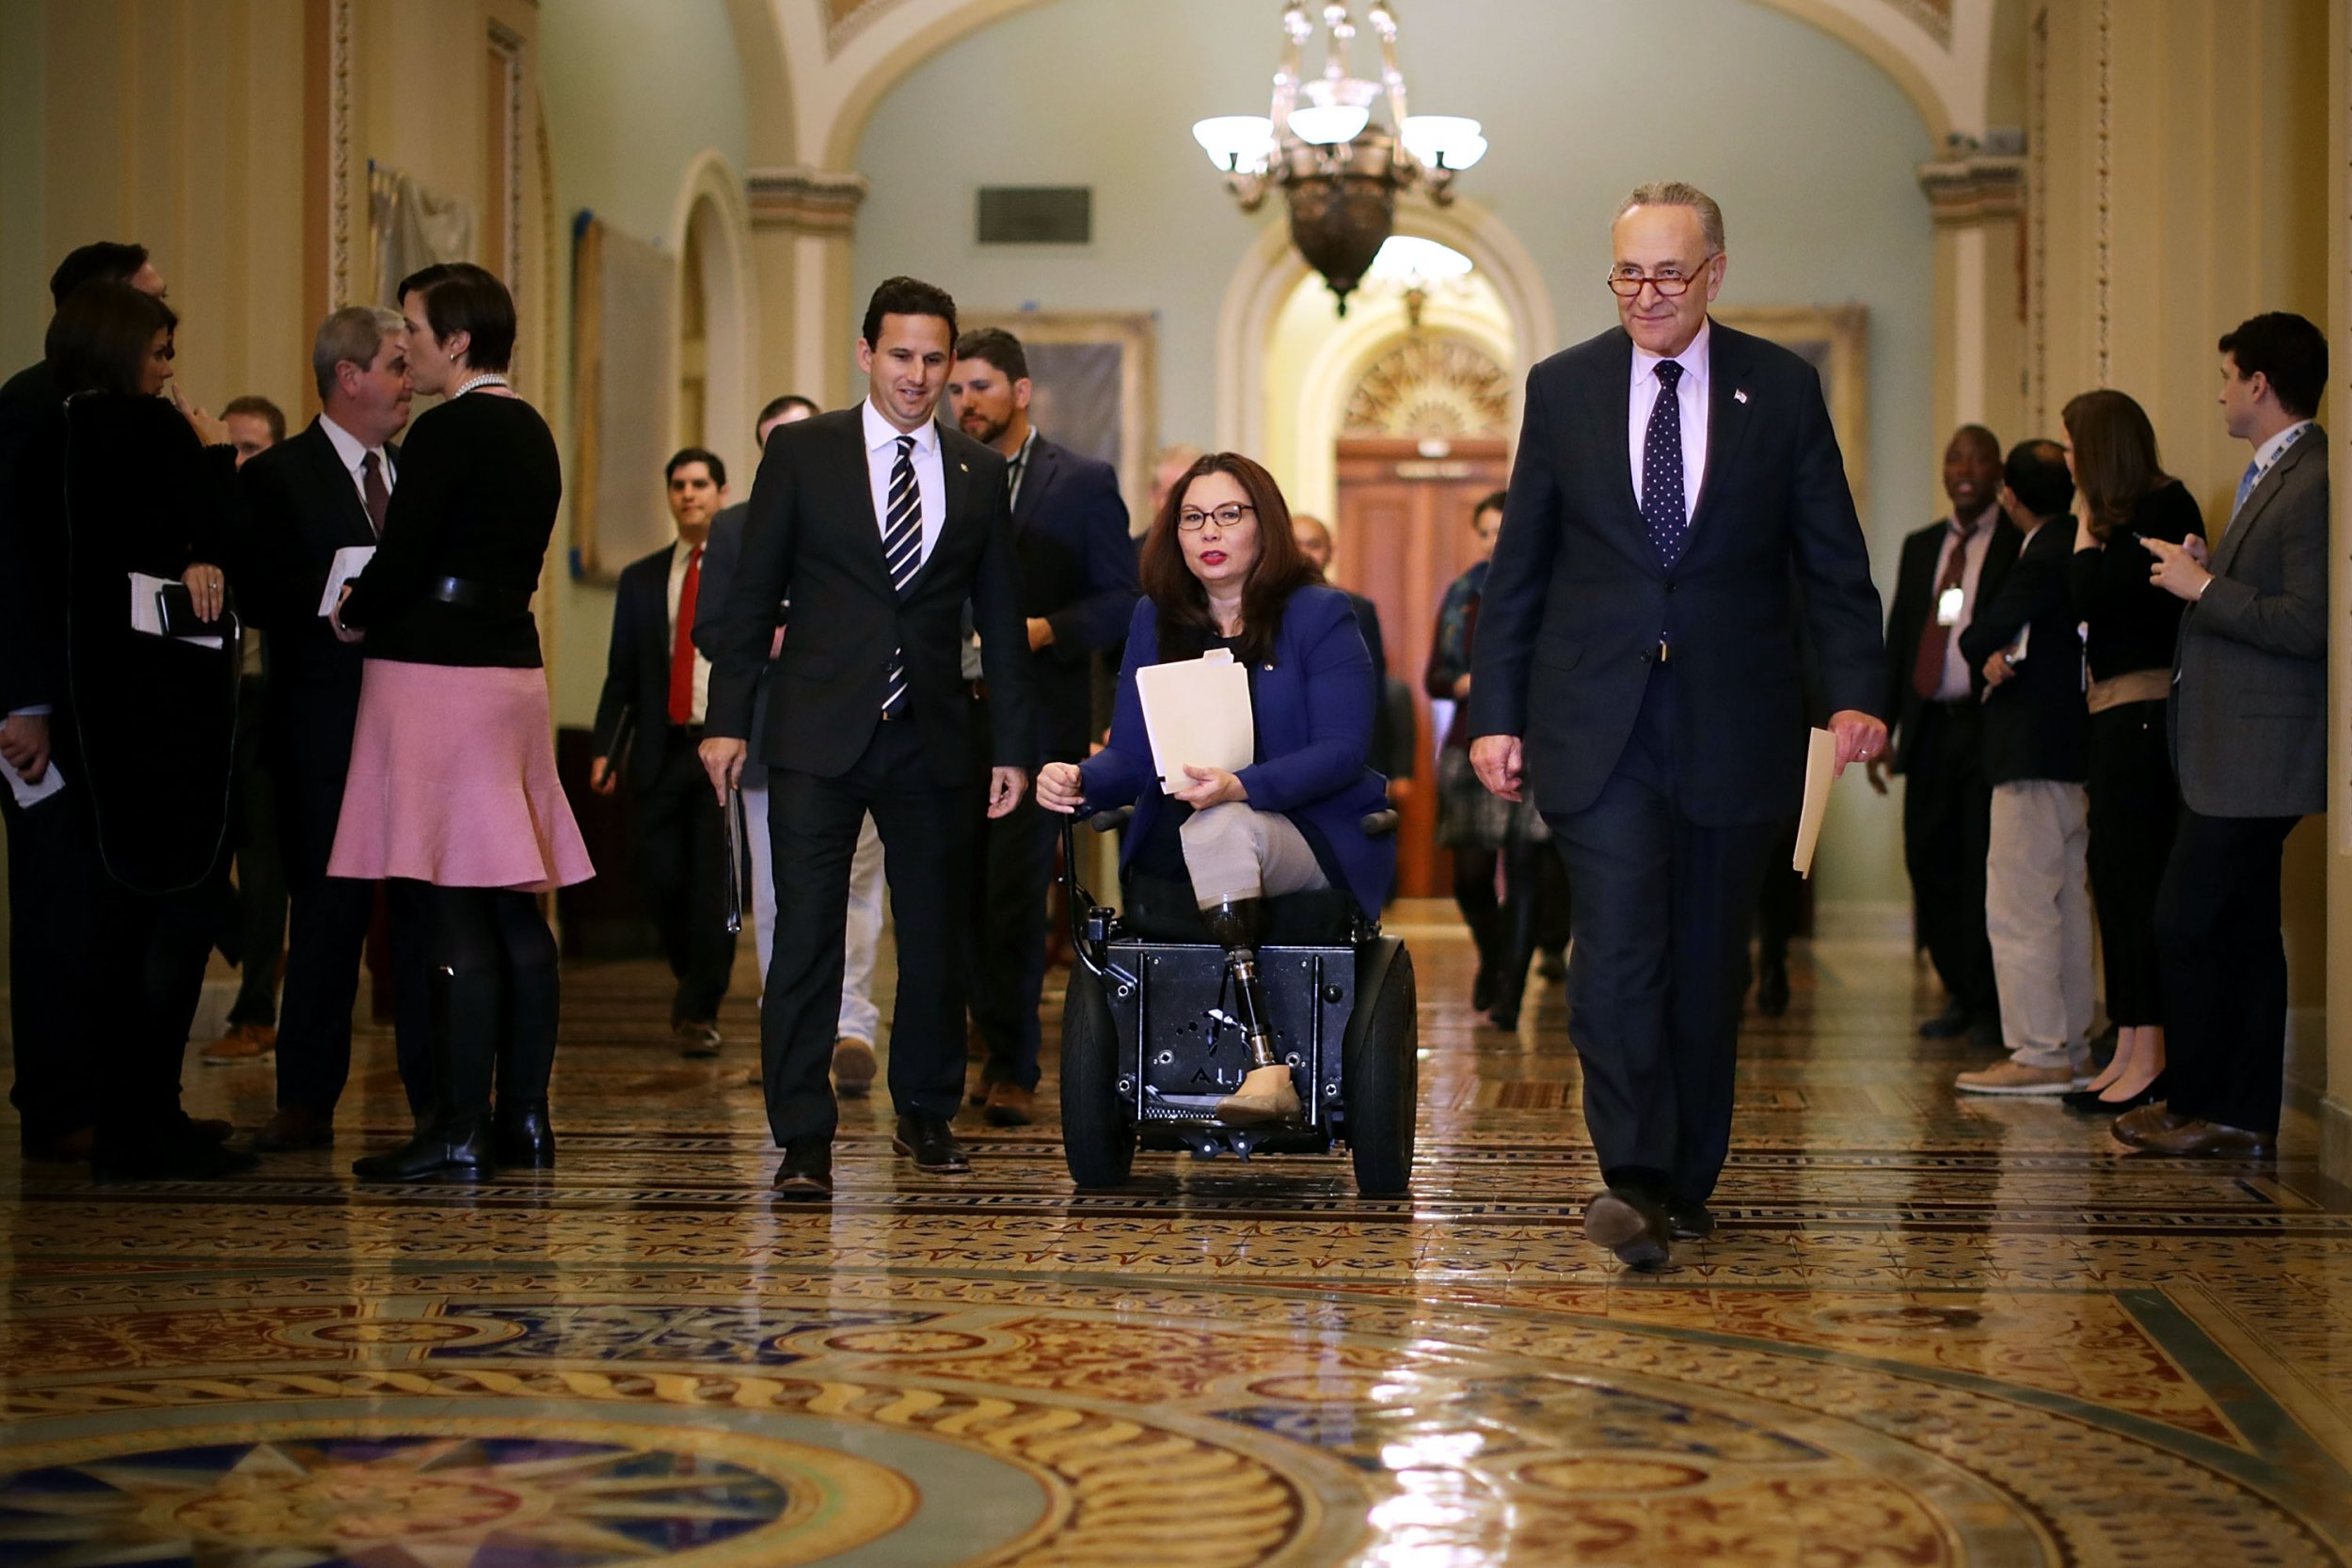 Republicans For Change >> Some Republicans Wanted Tammy Duckworth to Vote With Her Baby From Senate Cloakroom